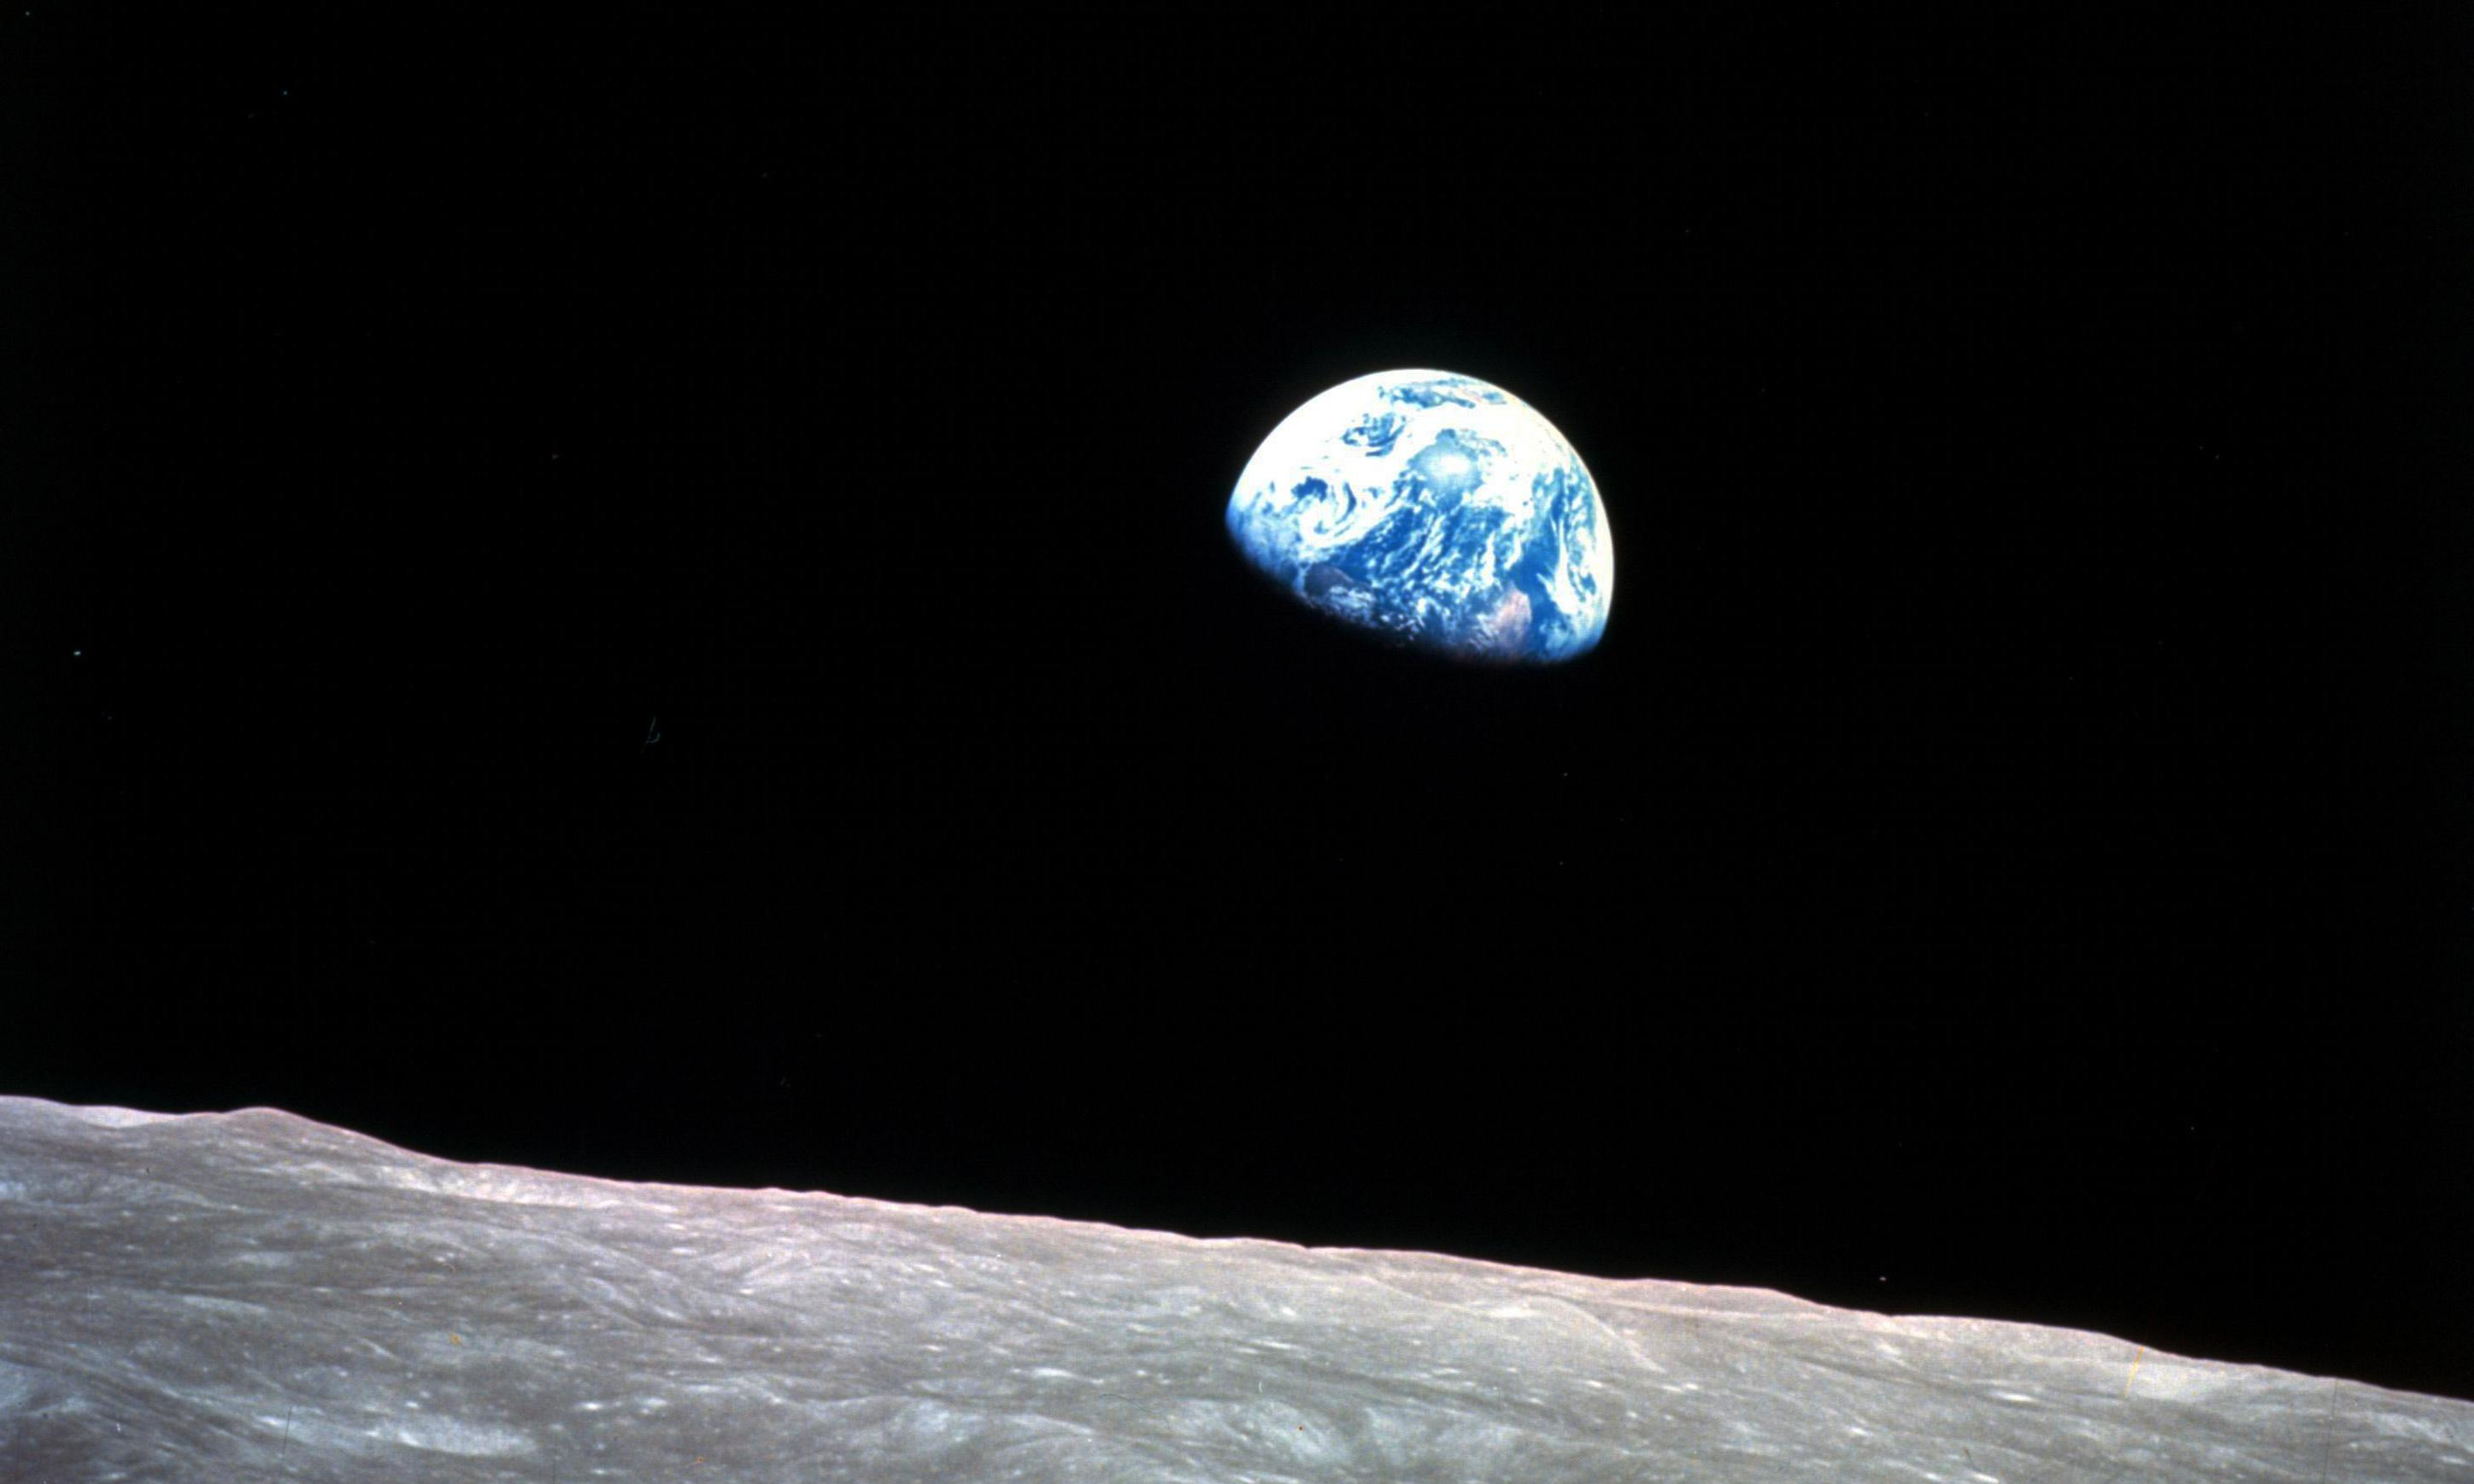 Earthrise at 50: the photo that changed how we see ourselves